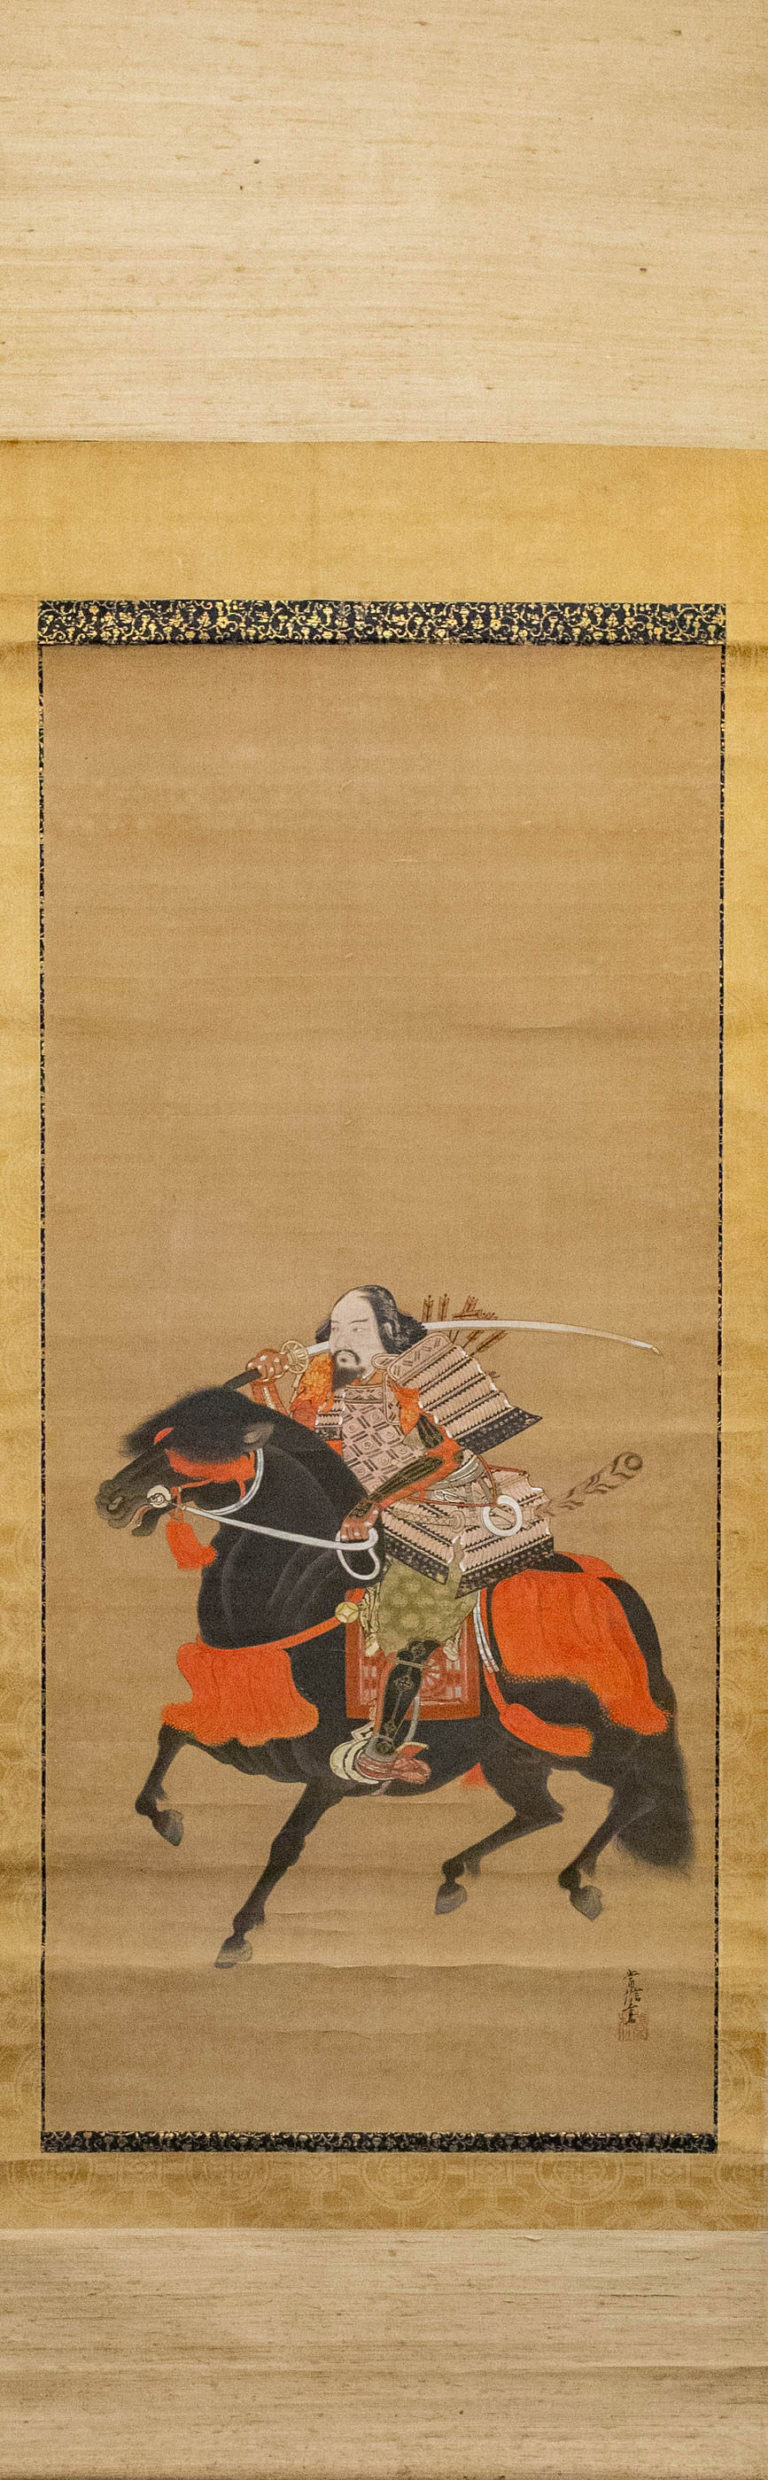 Japanese 18th Century Scroll of Shogun Ashikaga Takauji